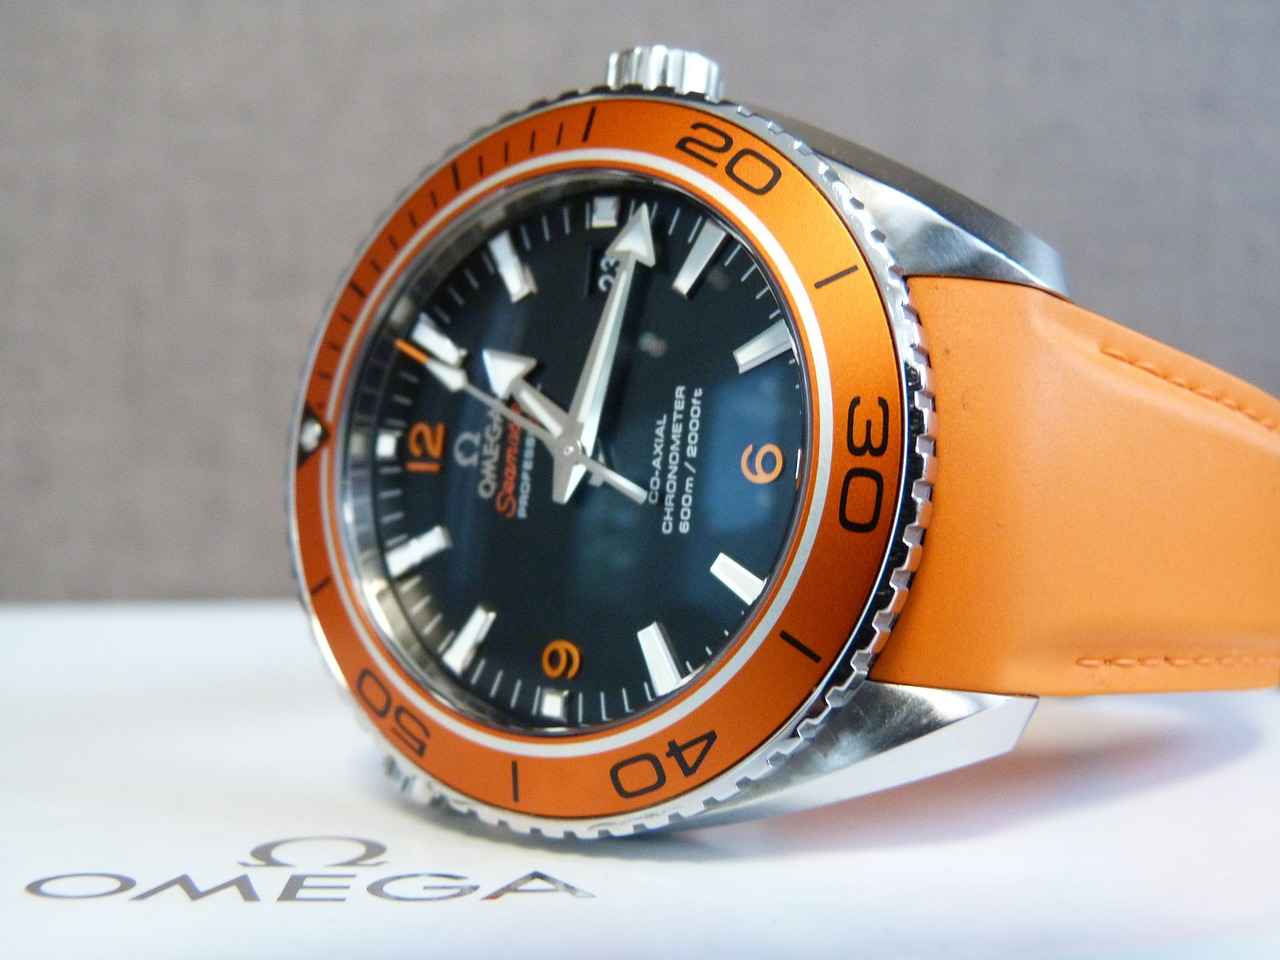 Omega Seamaster 300 Master Co-Axial Automatic